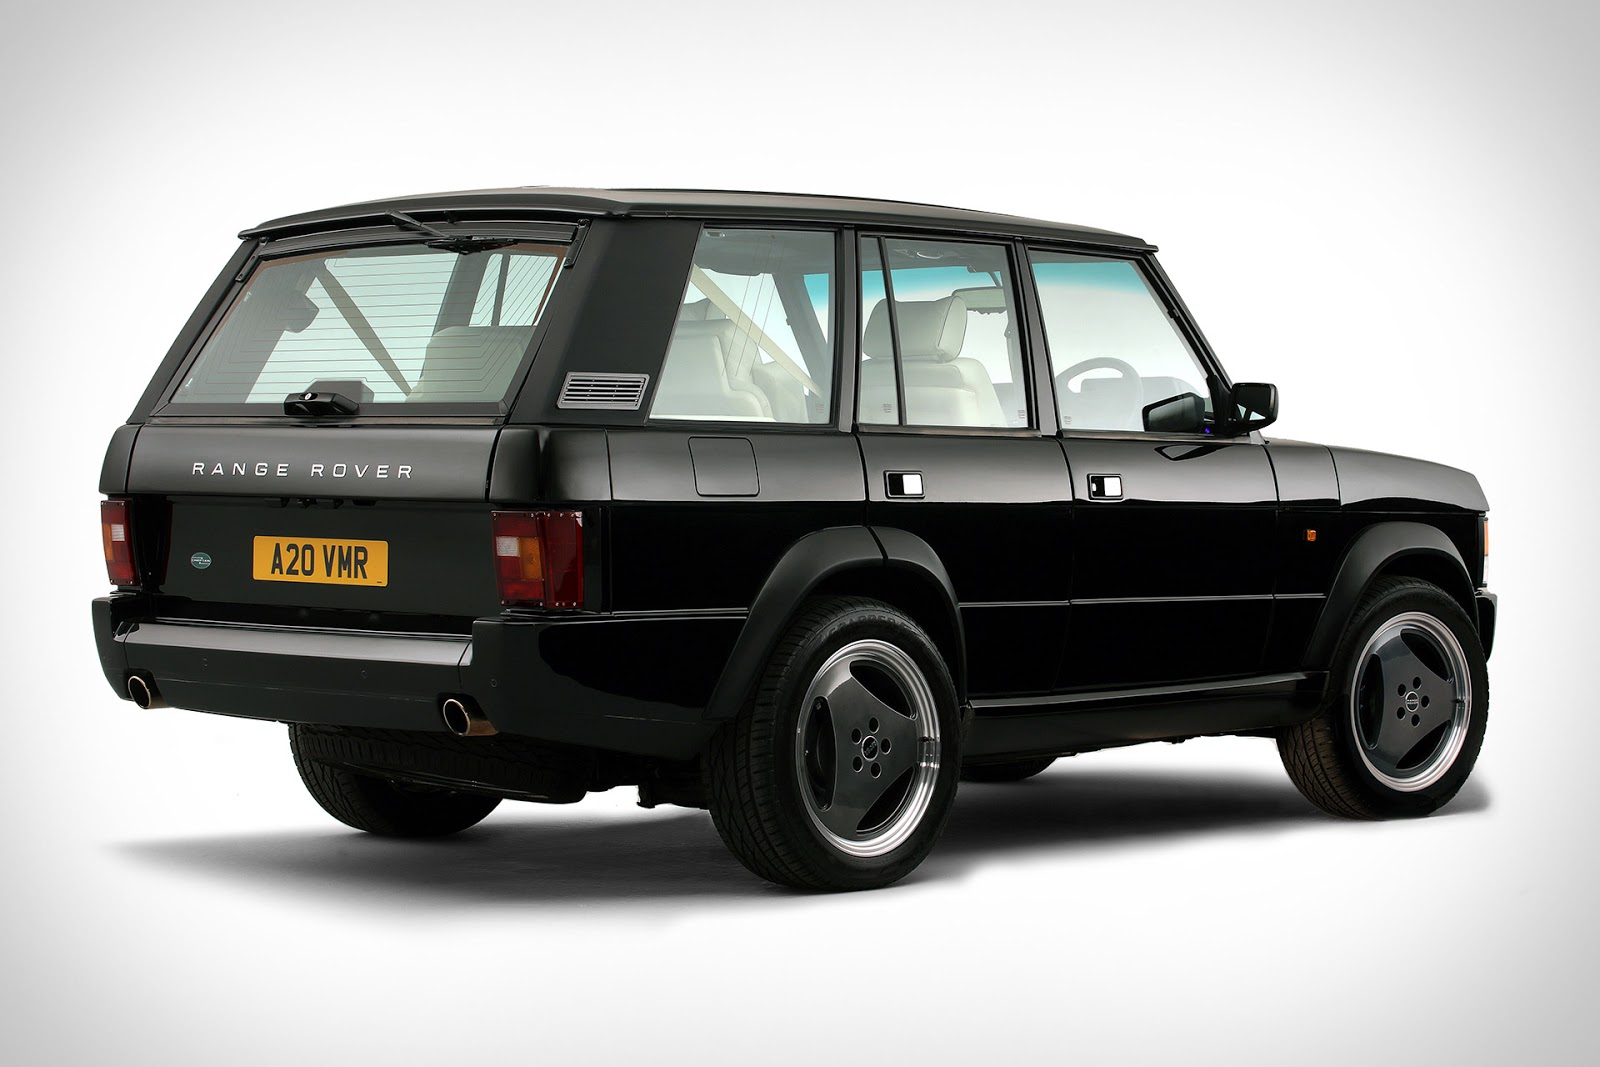 ranger-rover-chieftain-9